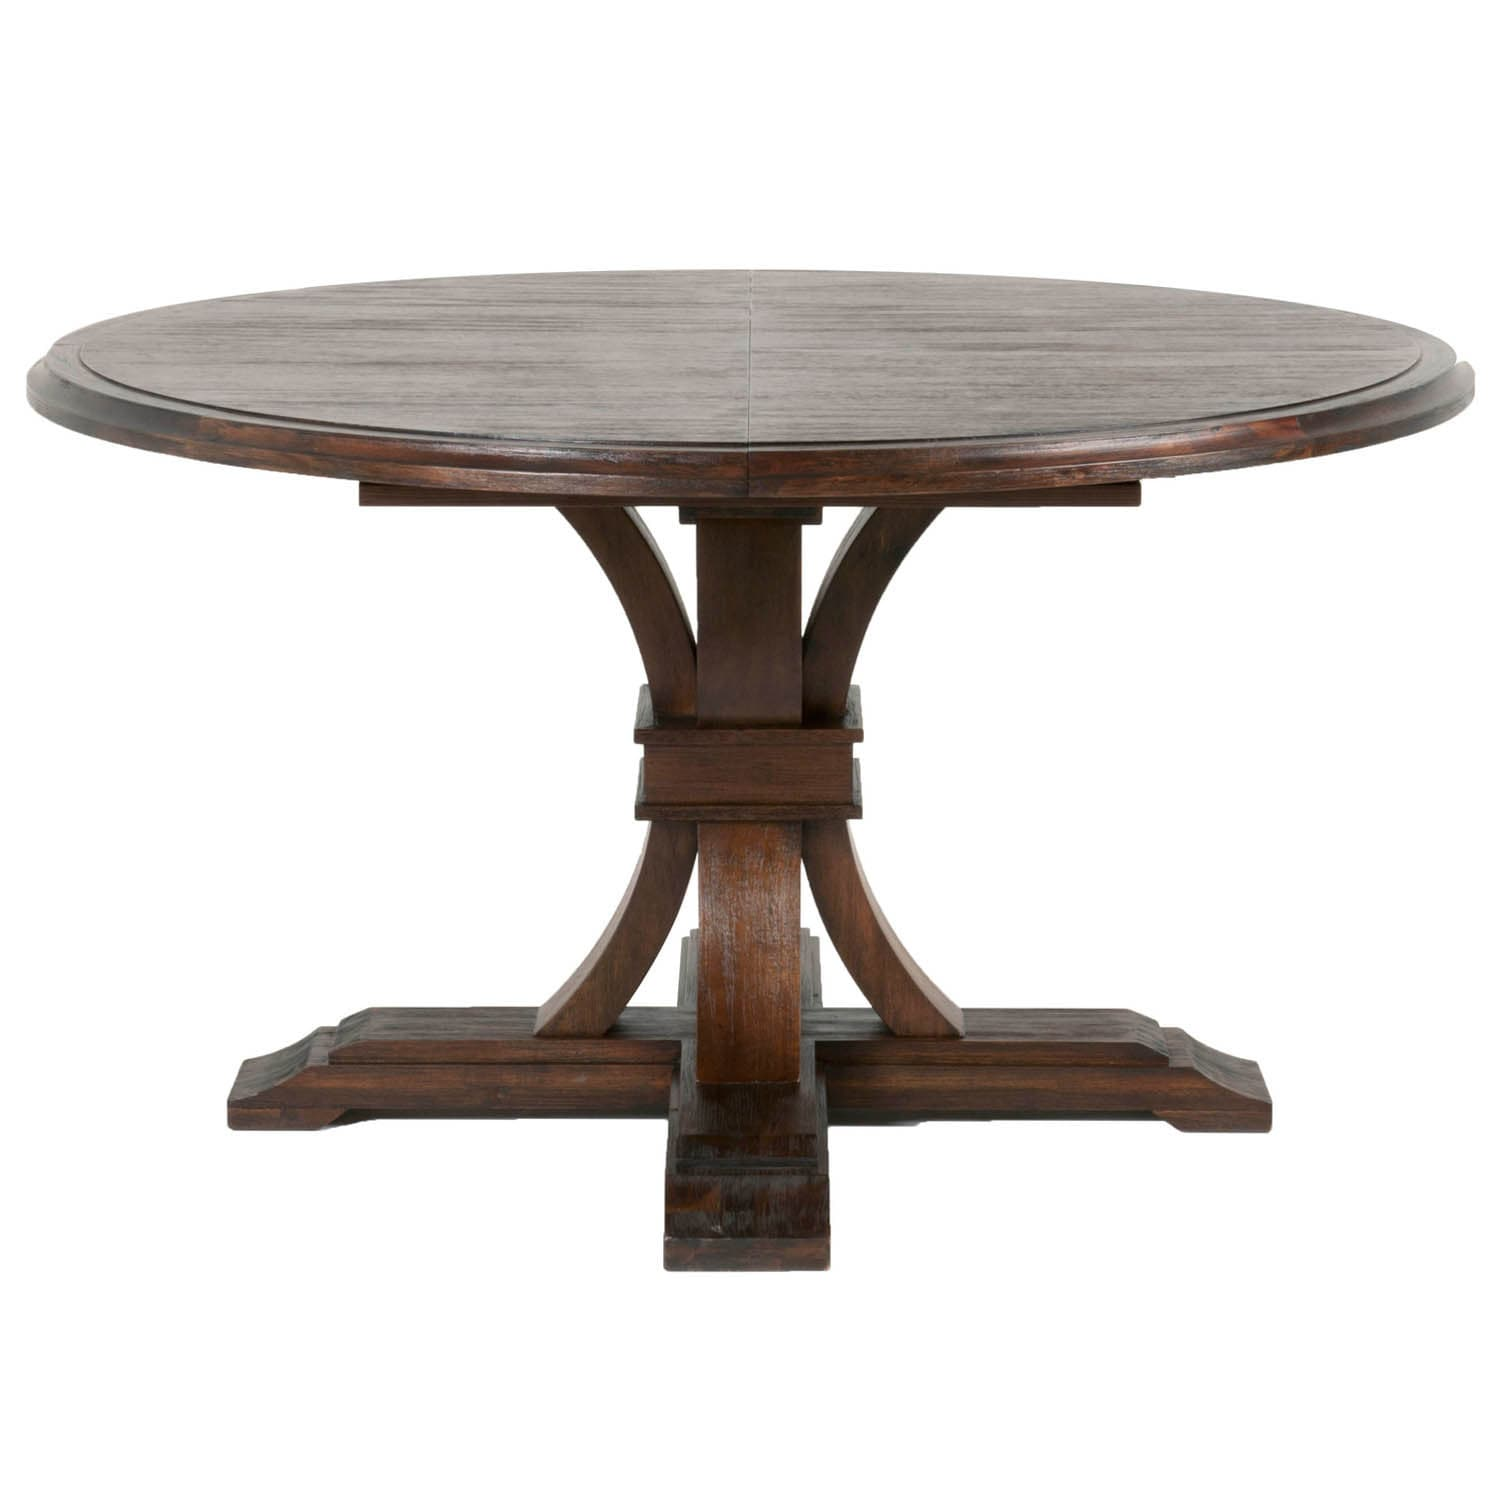 Darby Round Extension Dining Table, Rustic Java   Brown